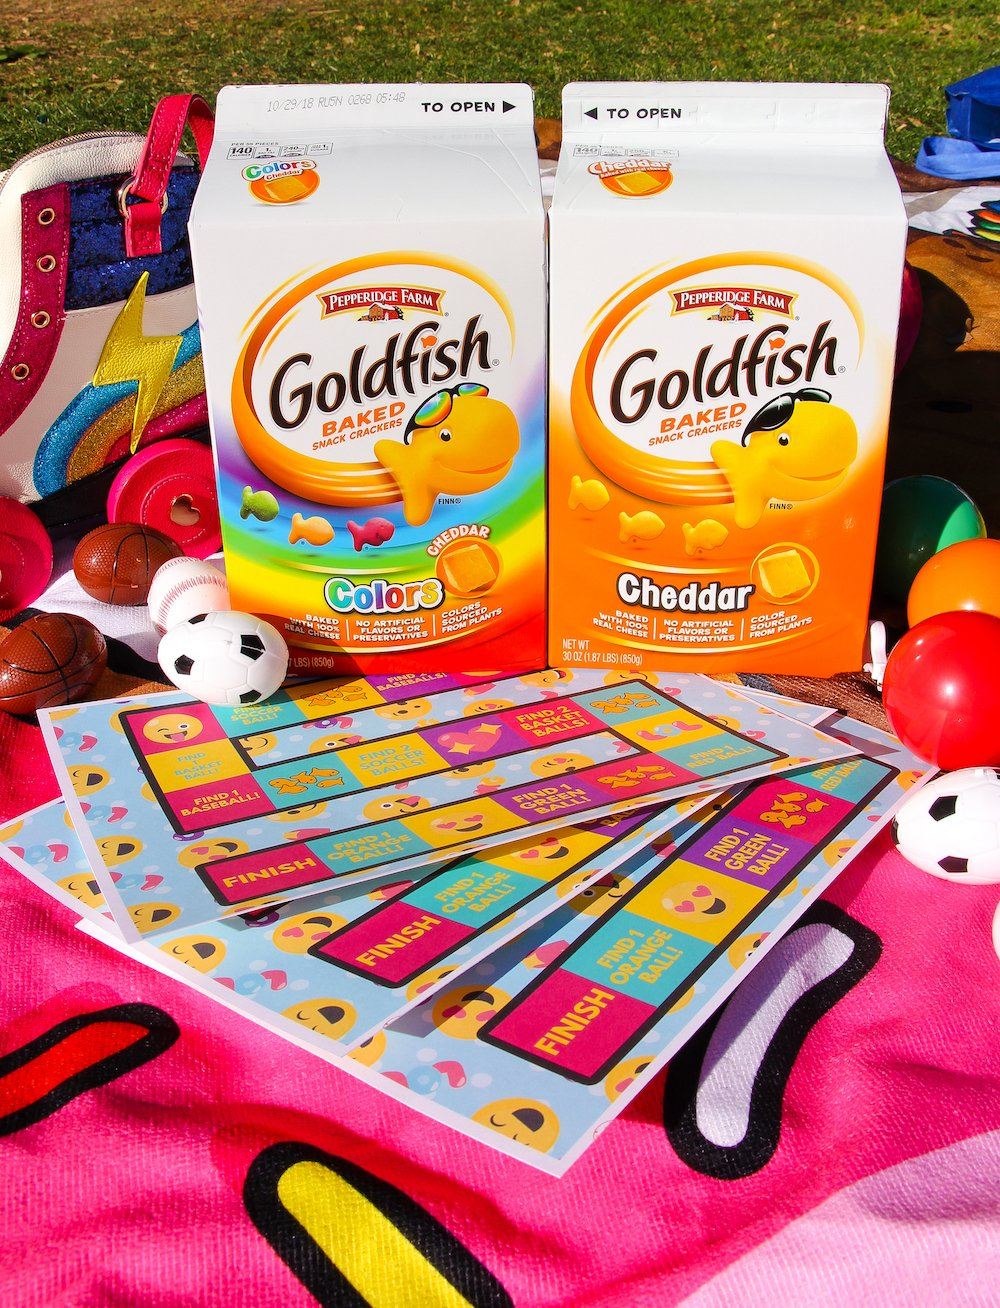 Diy find the goldfish crackers spring time game brite and bubbly shop pepperidge farm goldfish baked snack crackers cheddar 30 oz walmart pepperidge farm goldfish cheddar colors baked snack crackers 30 oz solutioingenieria Choice Image